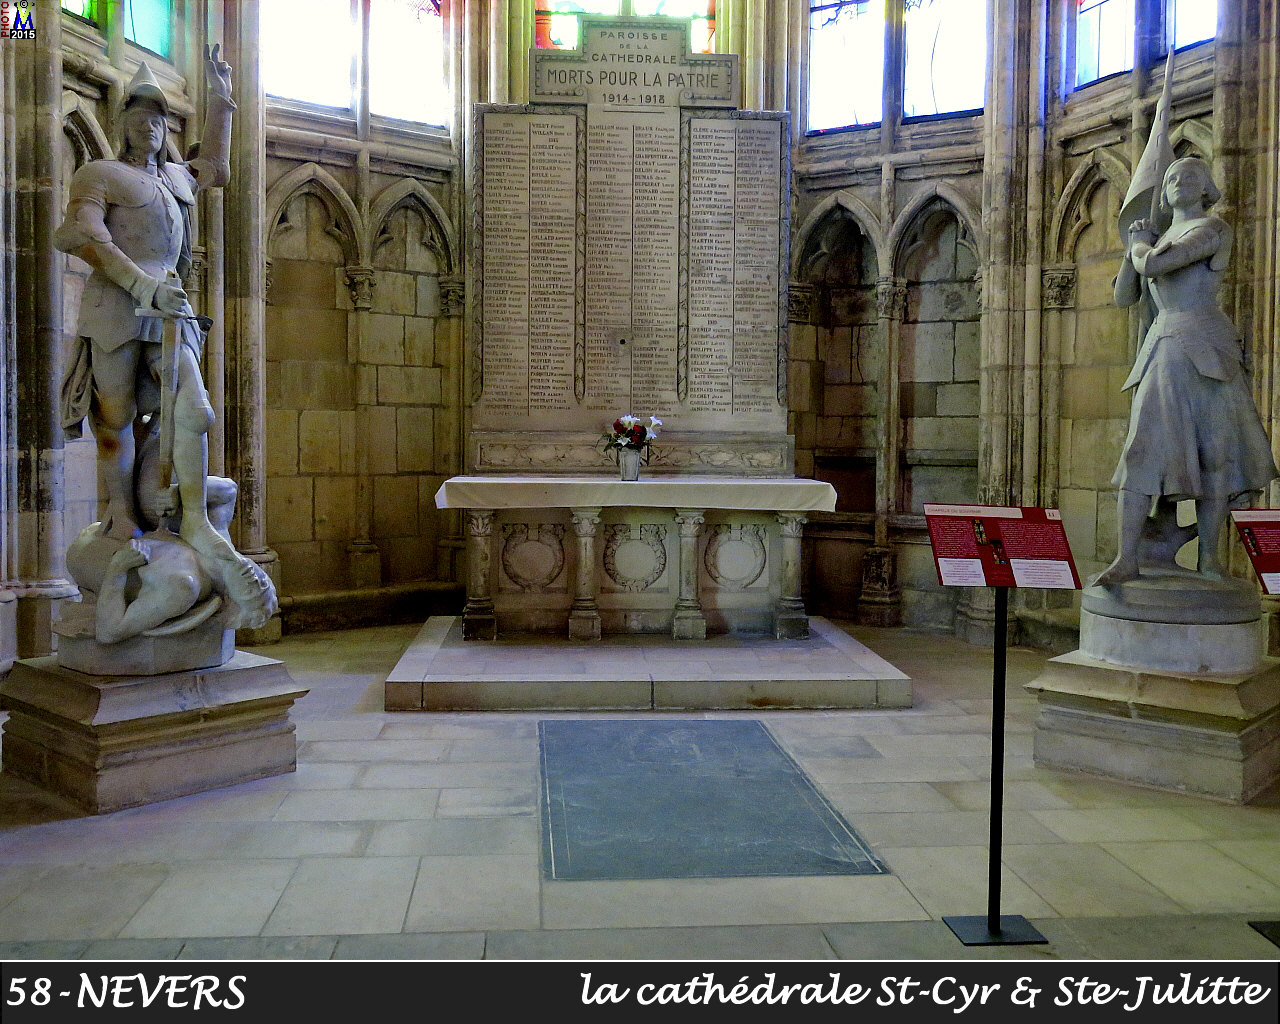 58NEVERS-cathedrale_230.jpg